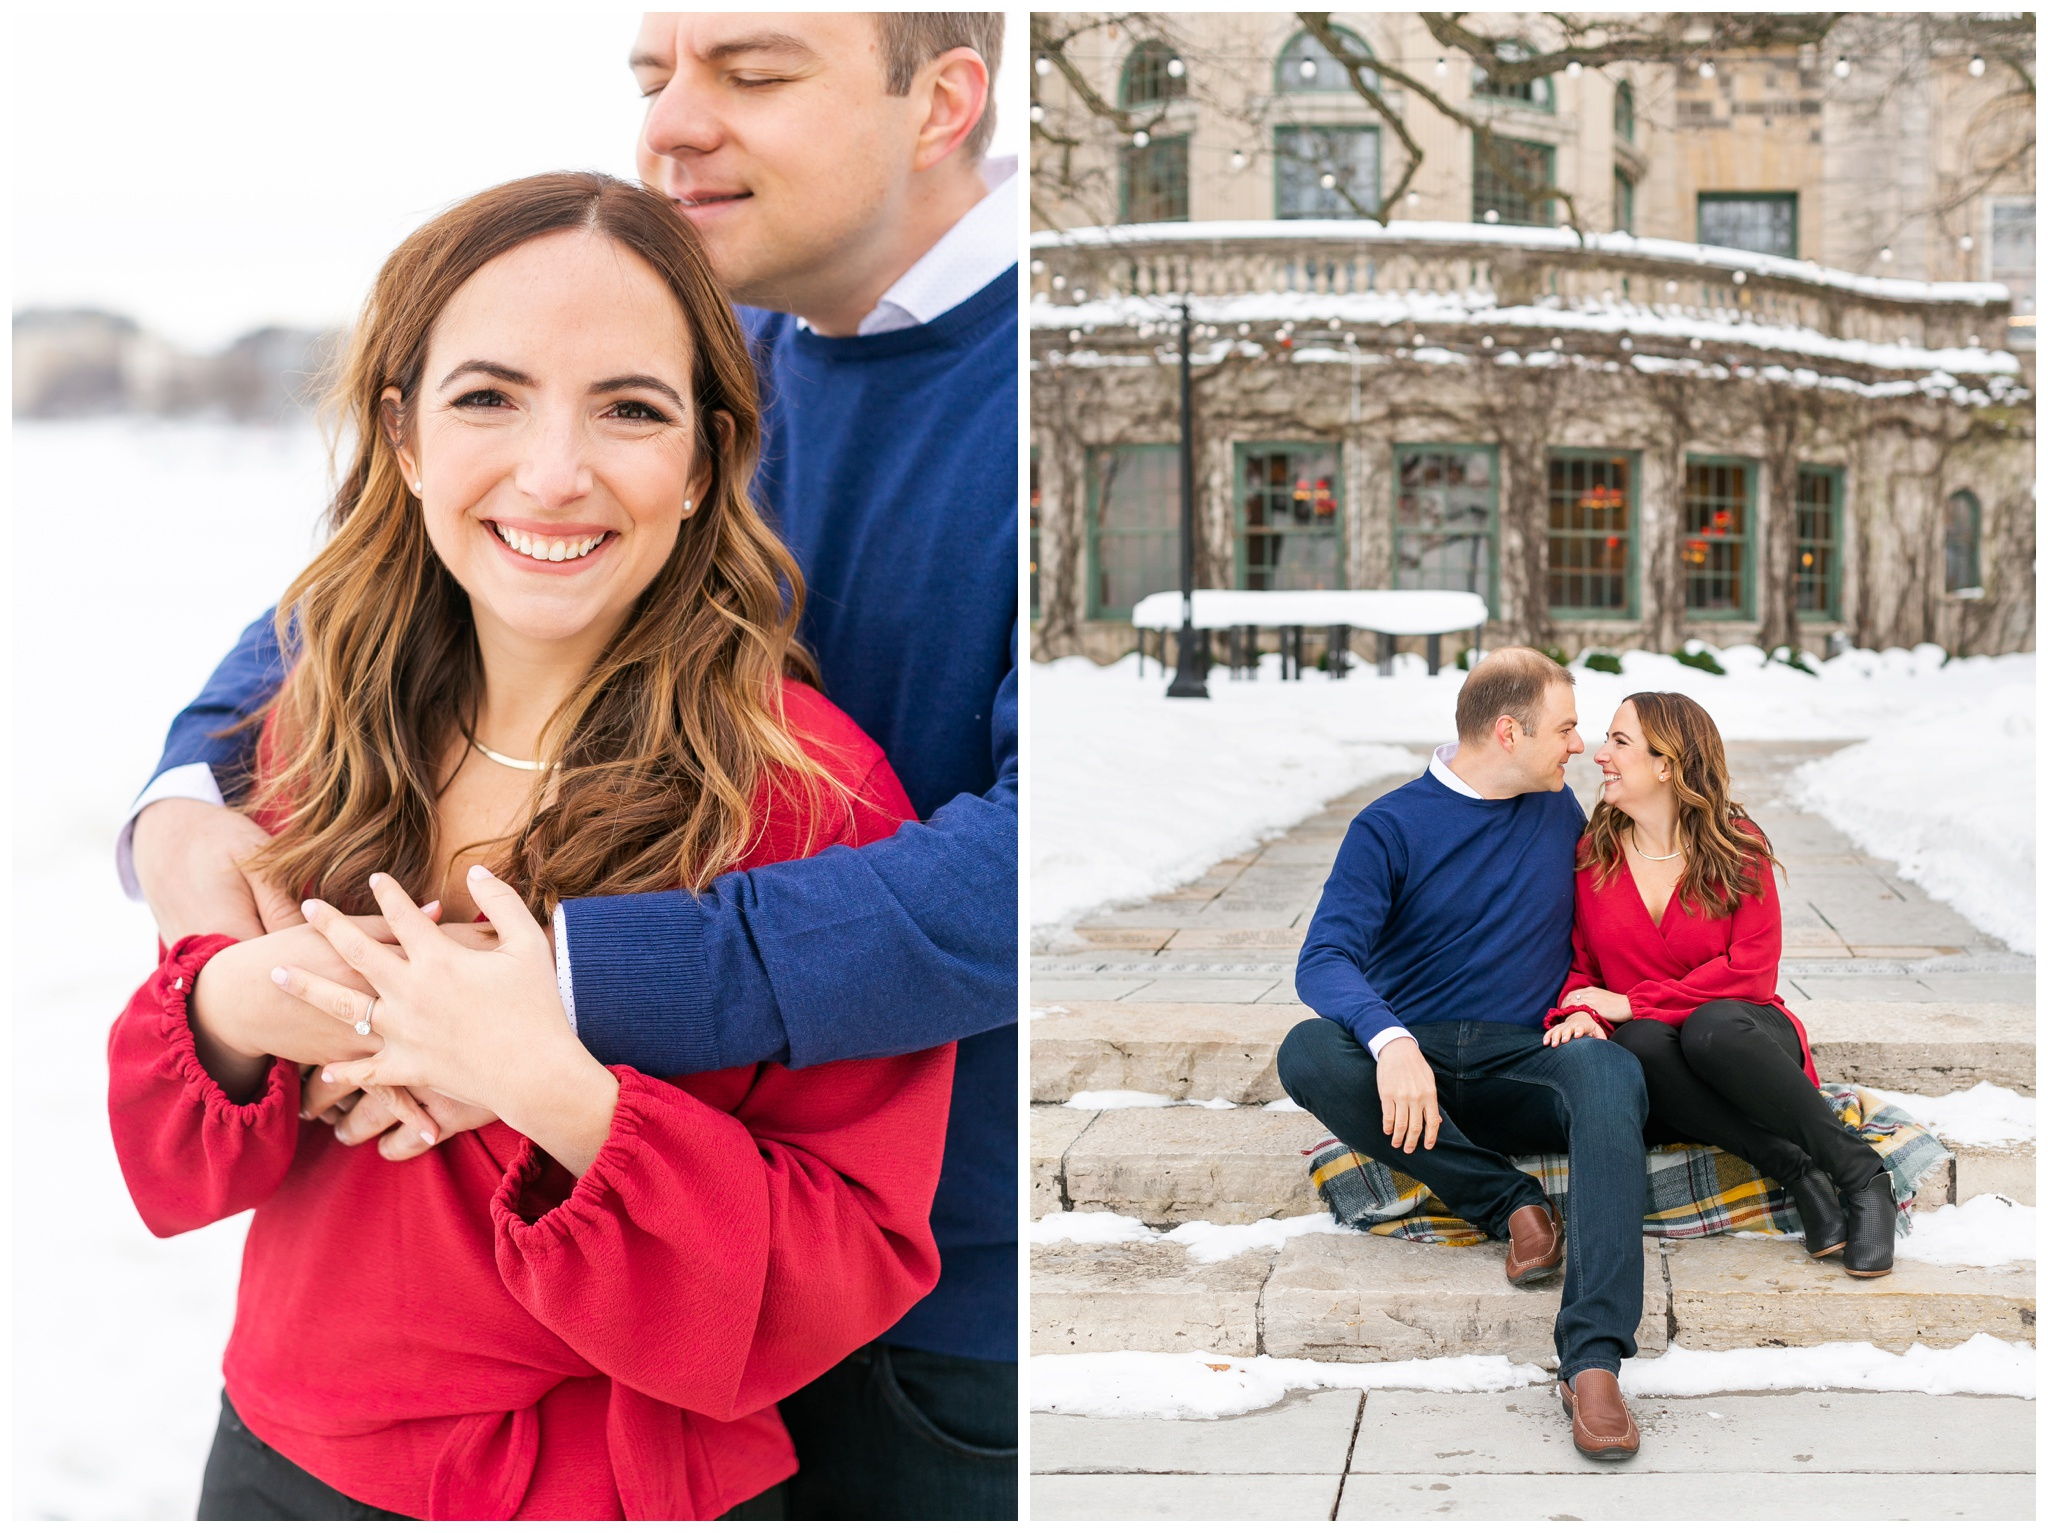 Memorial_Union_engagement_session_caynay_photo_2891.jpg